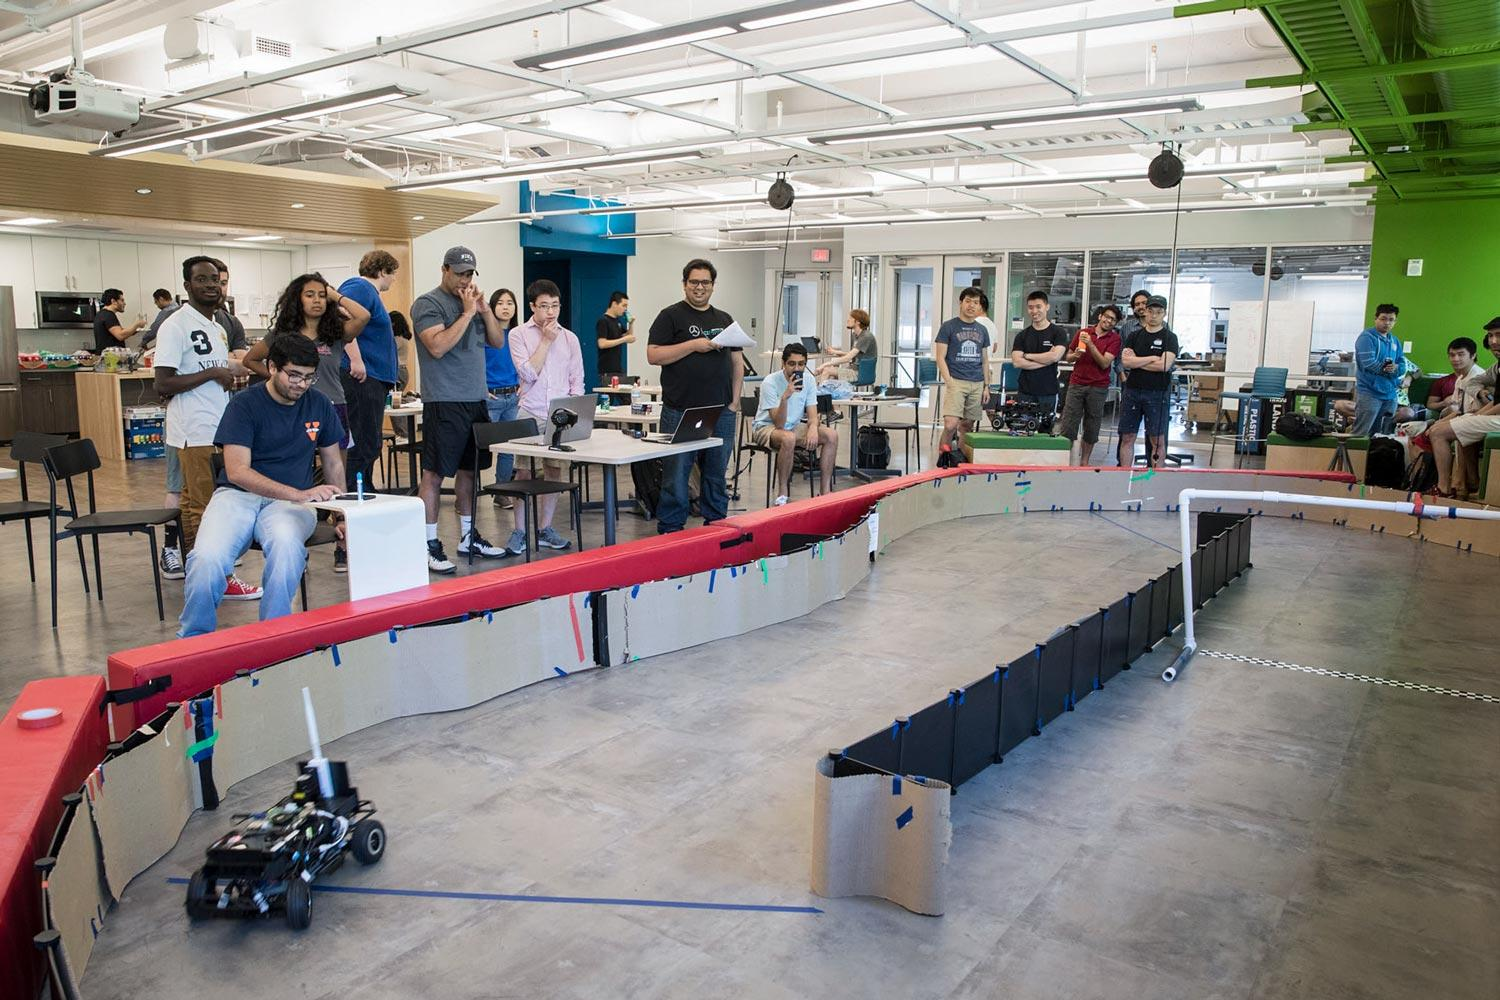 Computer science students raced their cars last week as their final exam.